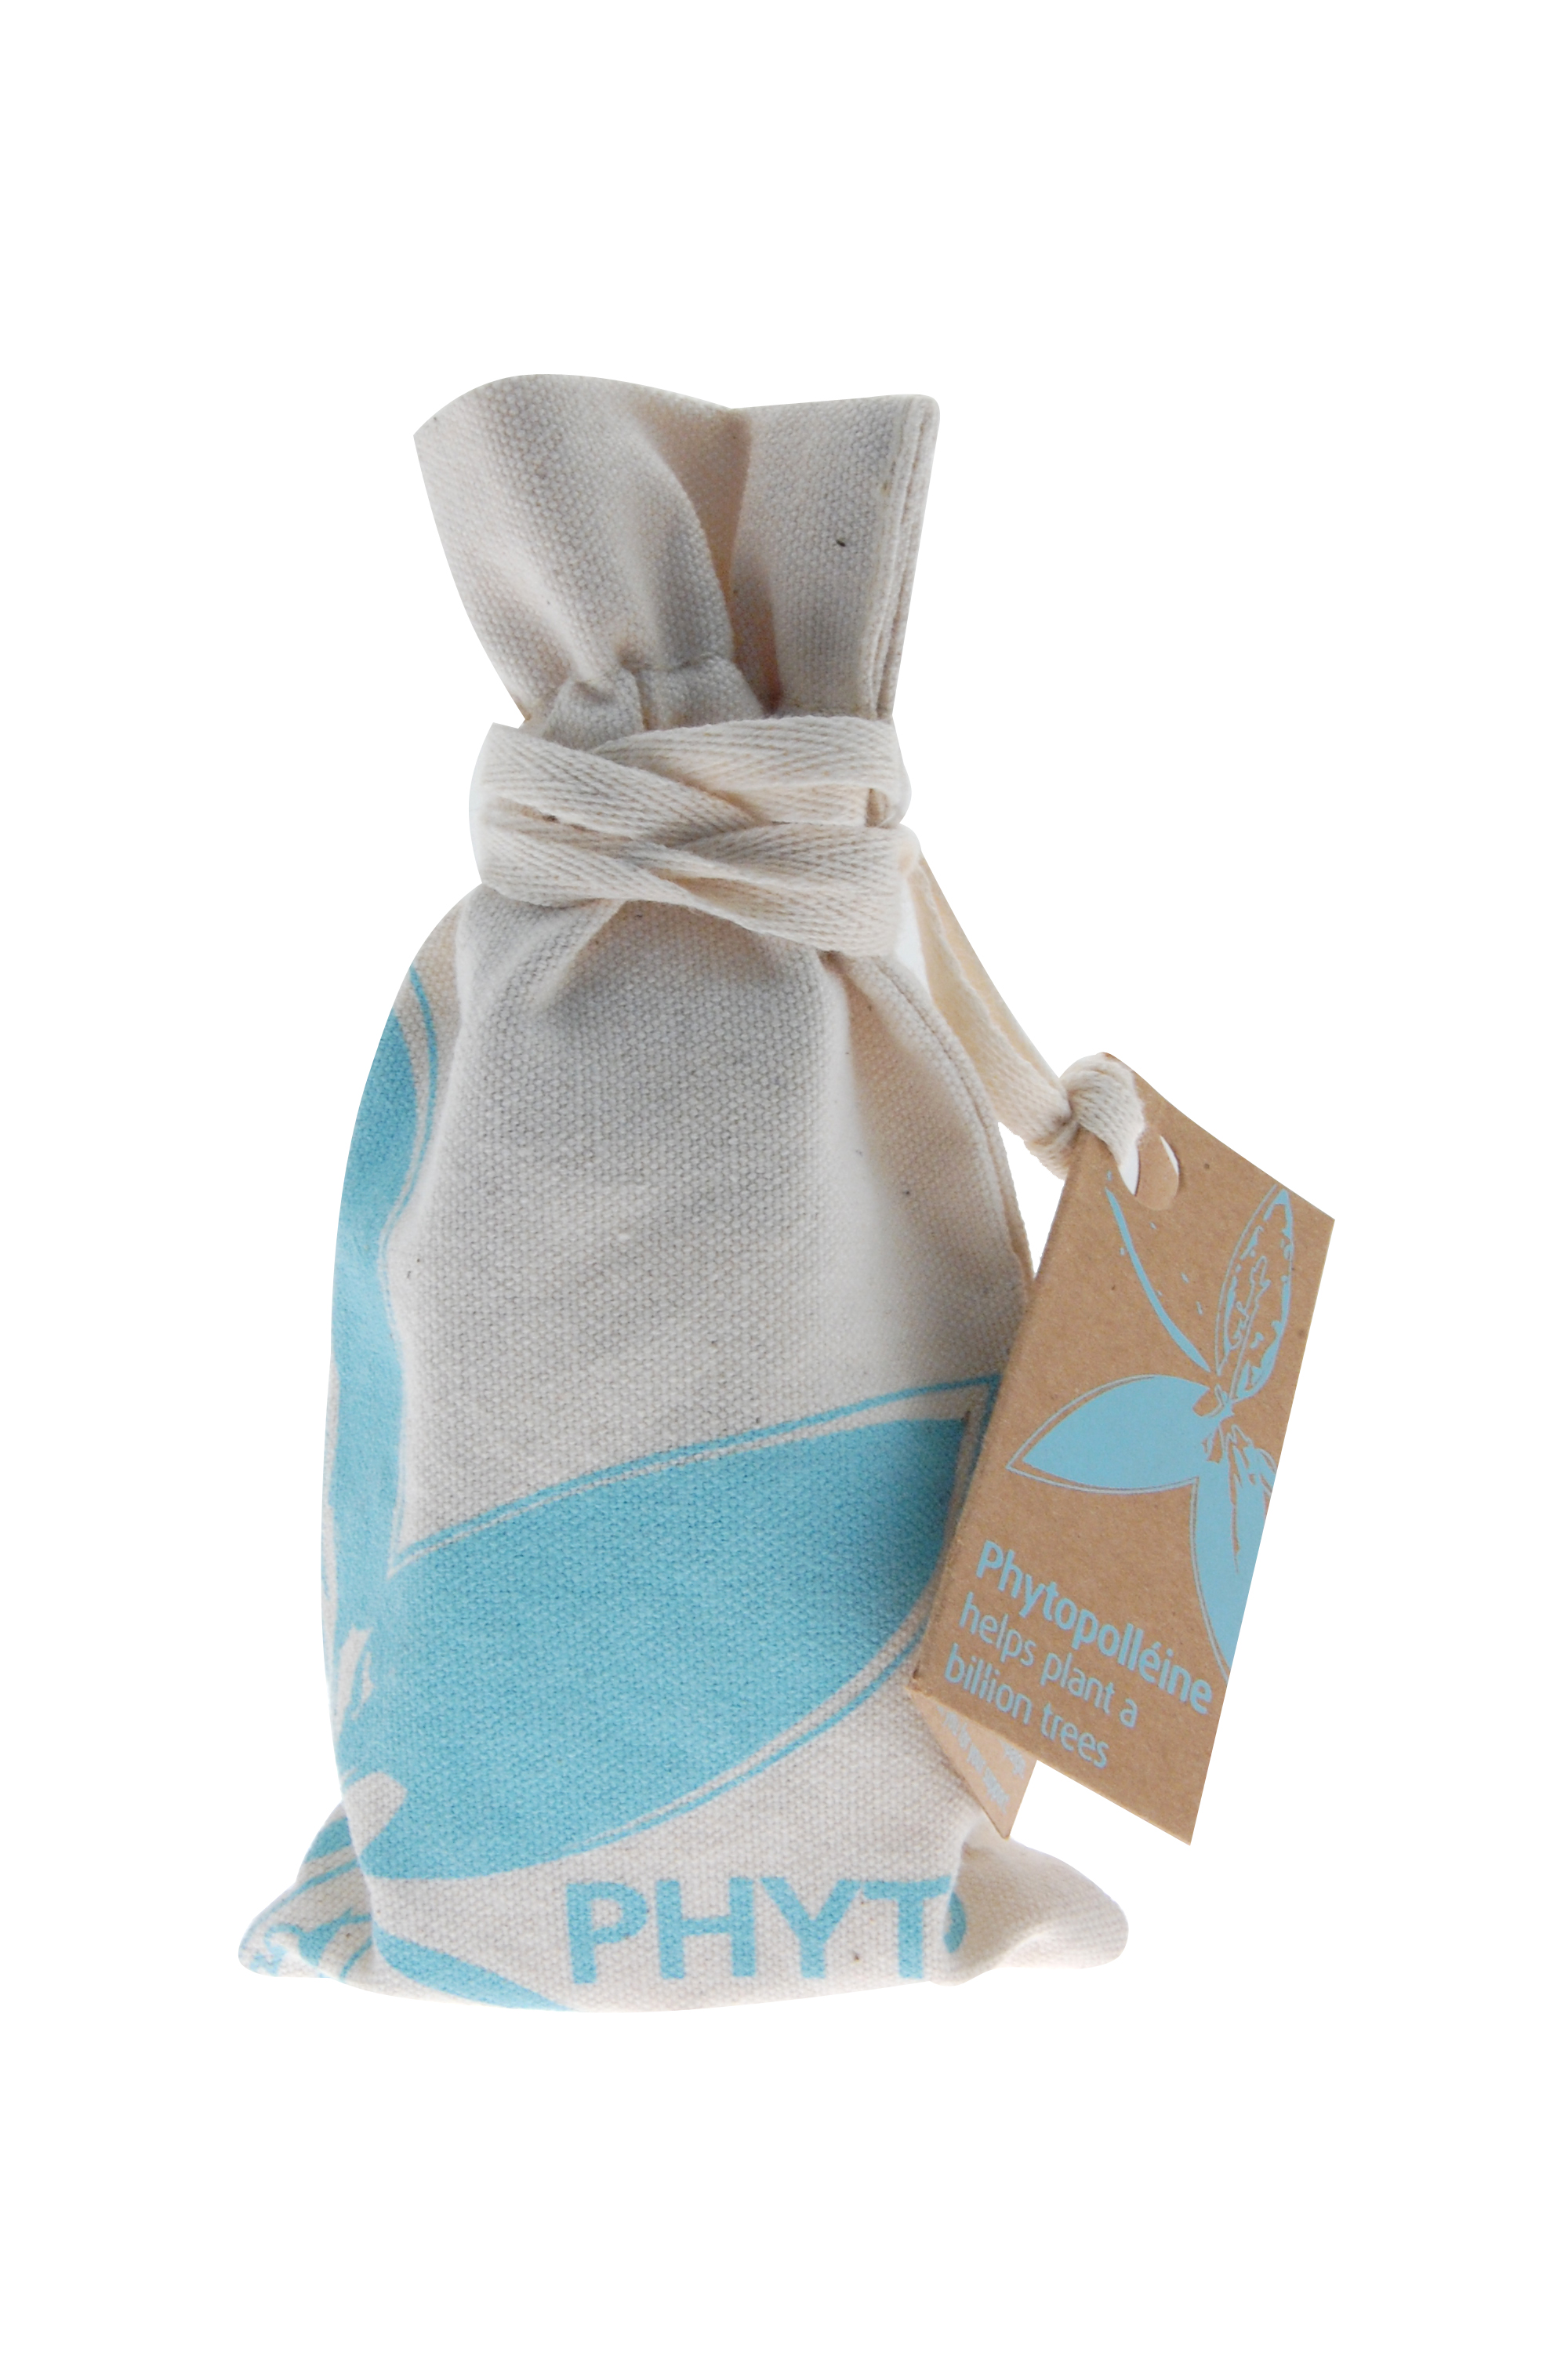 Limited edition Earth Day Phytopolleine bag. $2 from each sale benefits The Nature Conservancy's Plant a Billion Trees Campaign